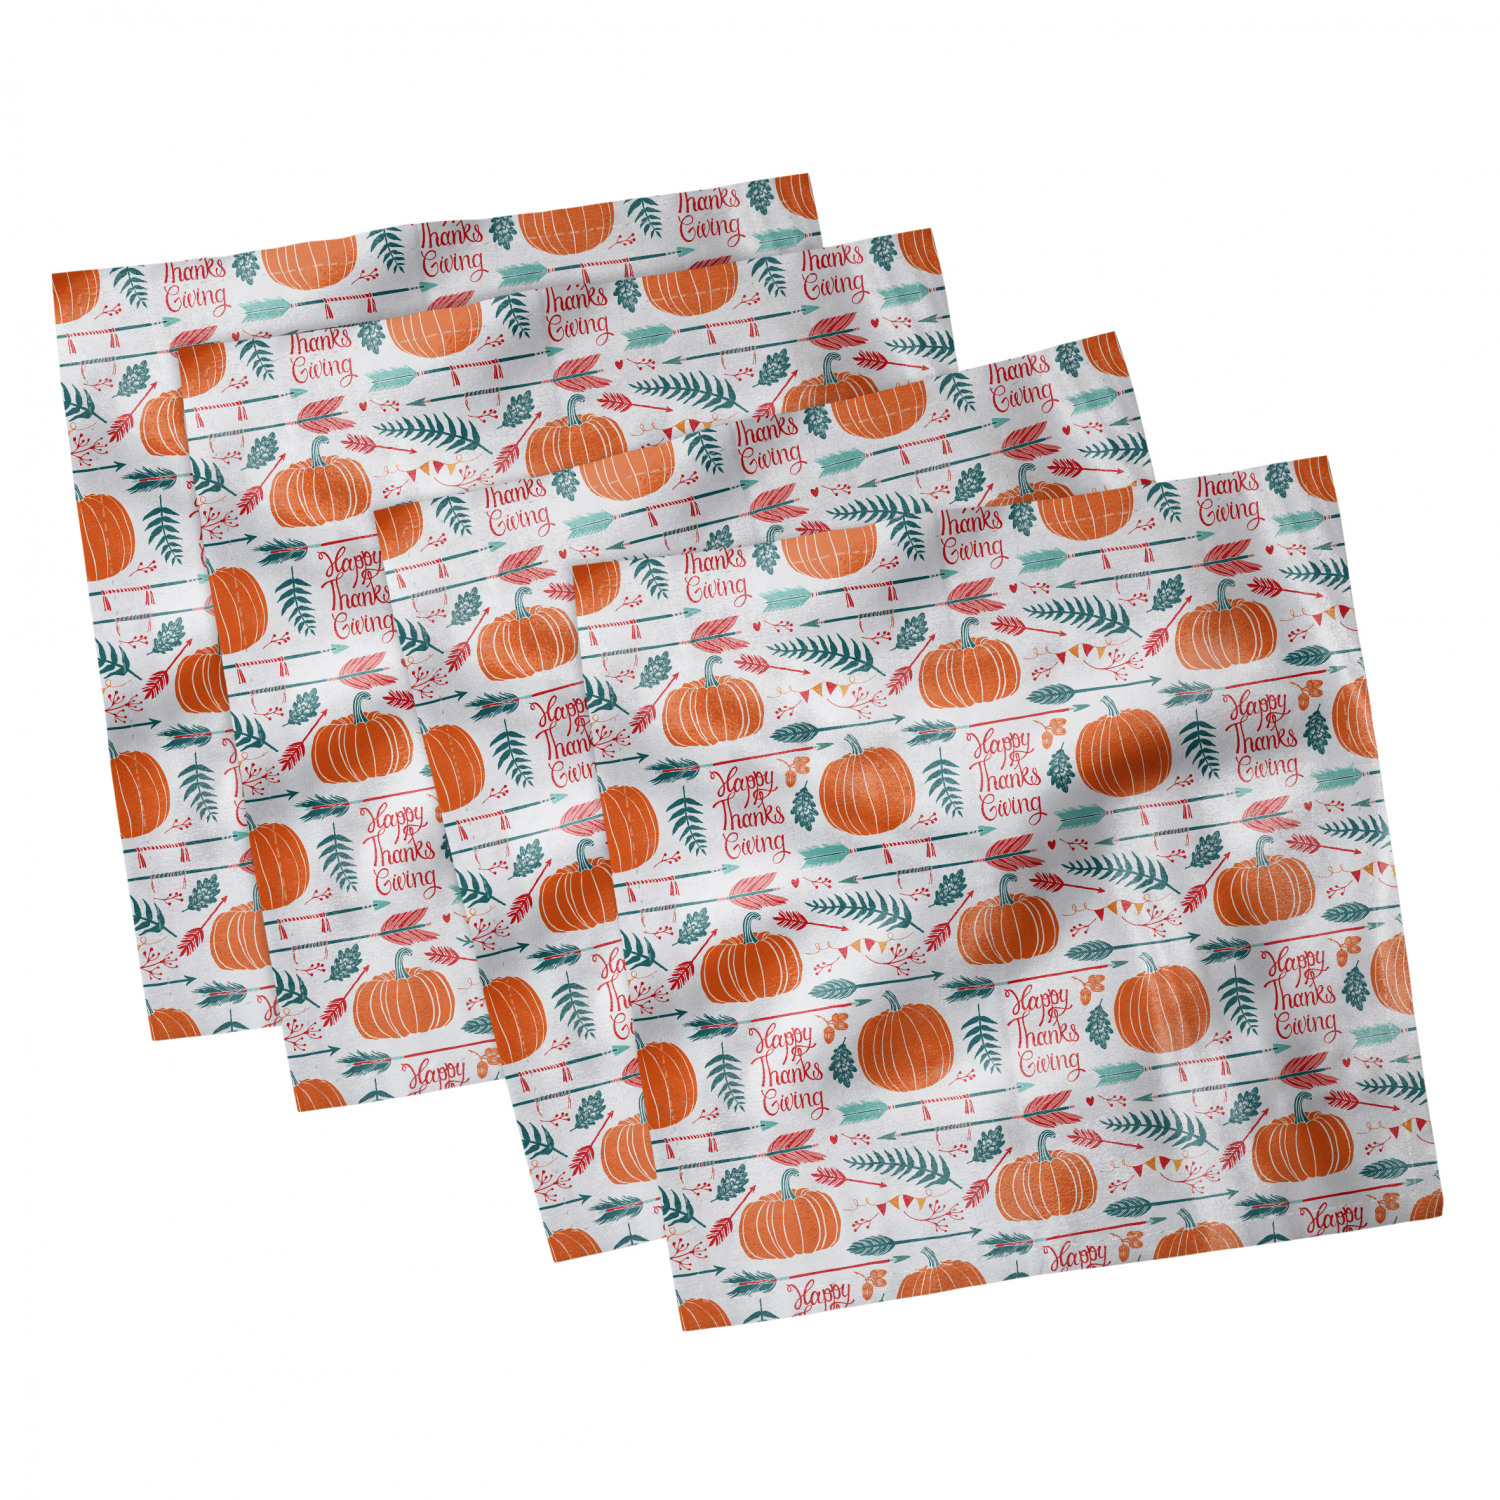 thumbnail 105 - Ambesonne-Autumn-Fall-Decorative-Satin-Napkins-Set-of-4-Party-Dinner-Fabric